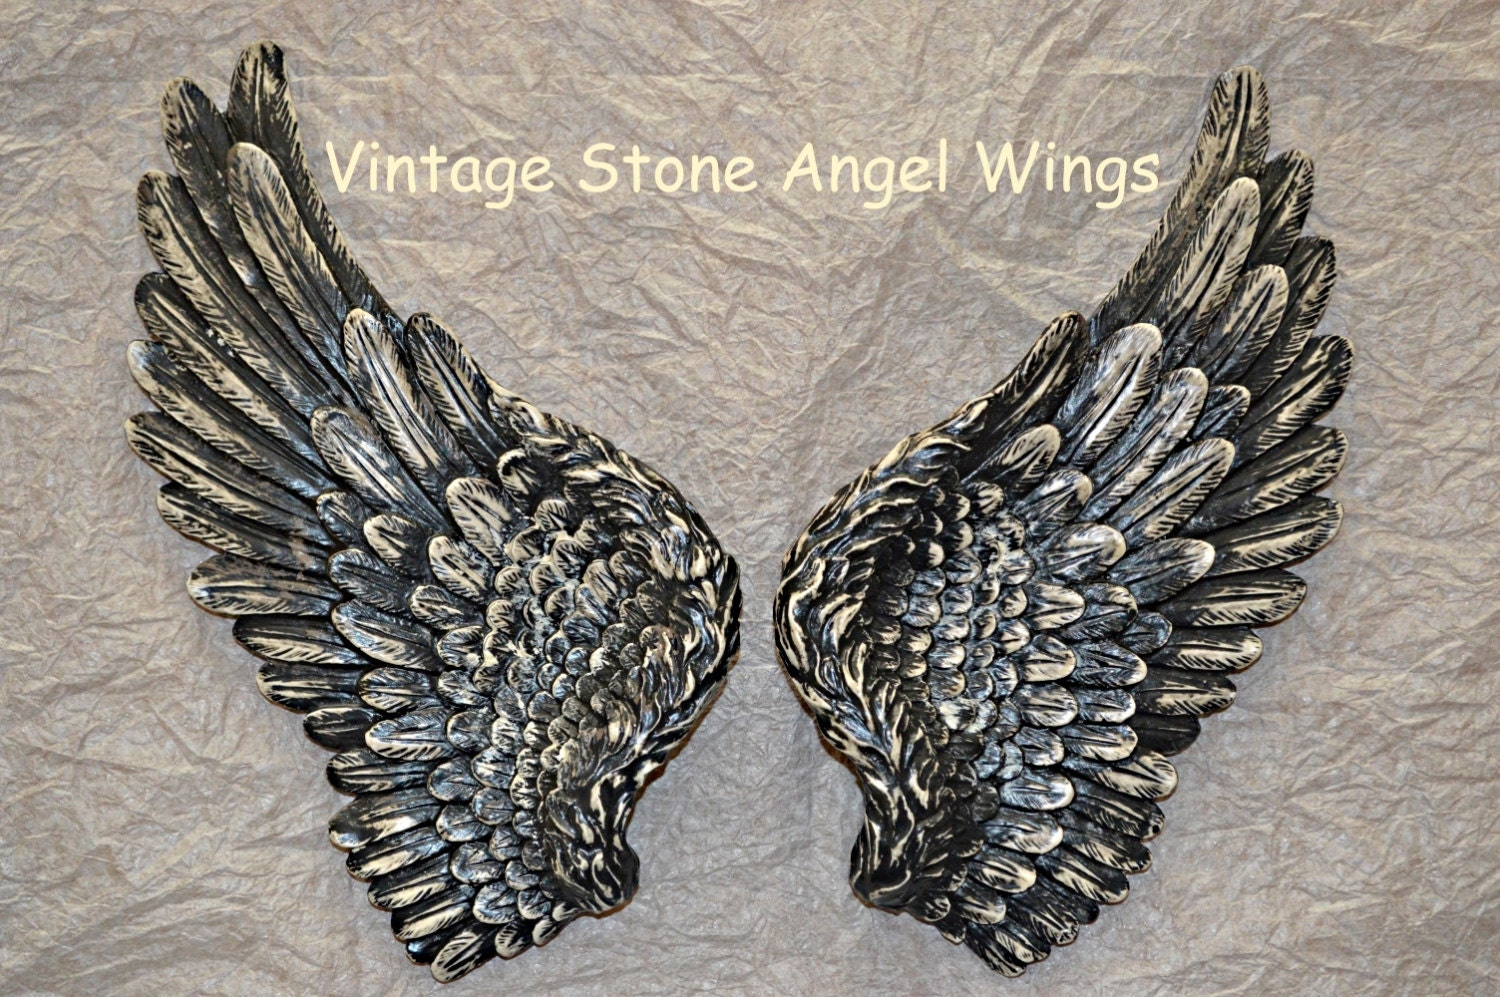 Beautiful Vintage Antique Style Shabby Chic Vintage Stone Angel Wings Wall Art Decoration